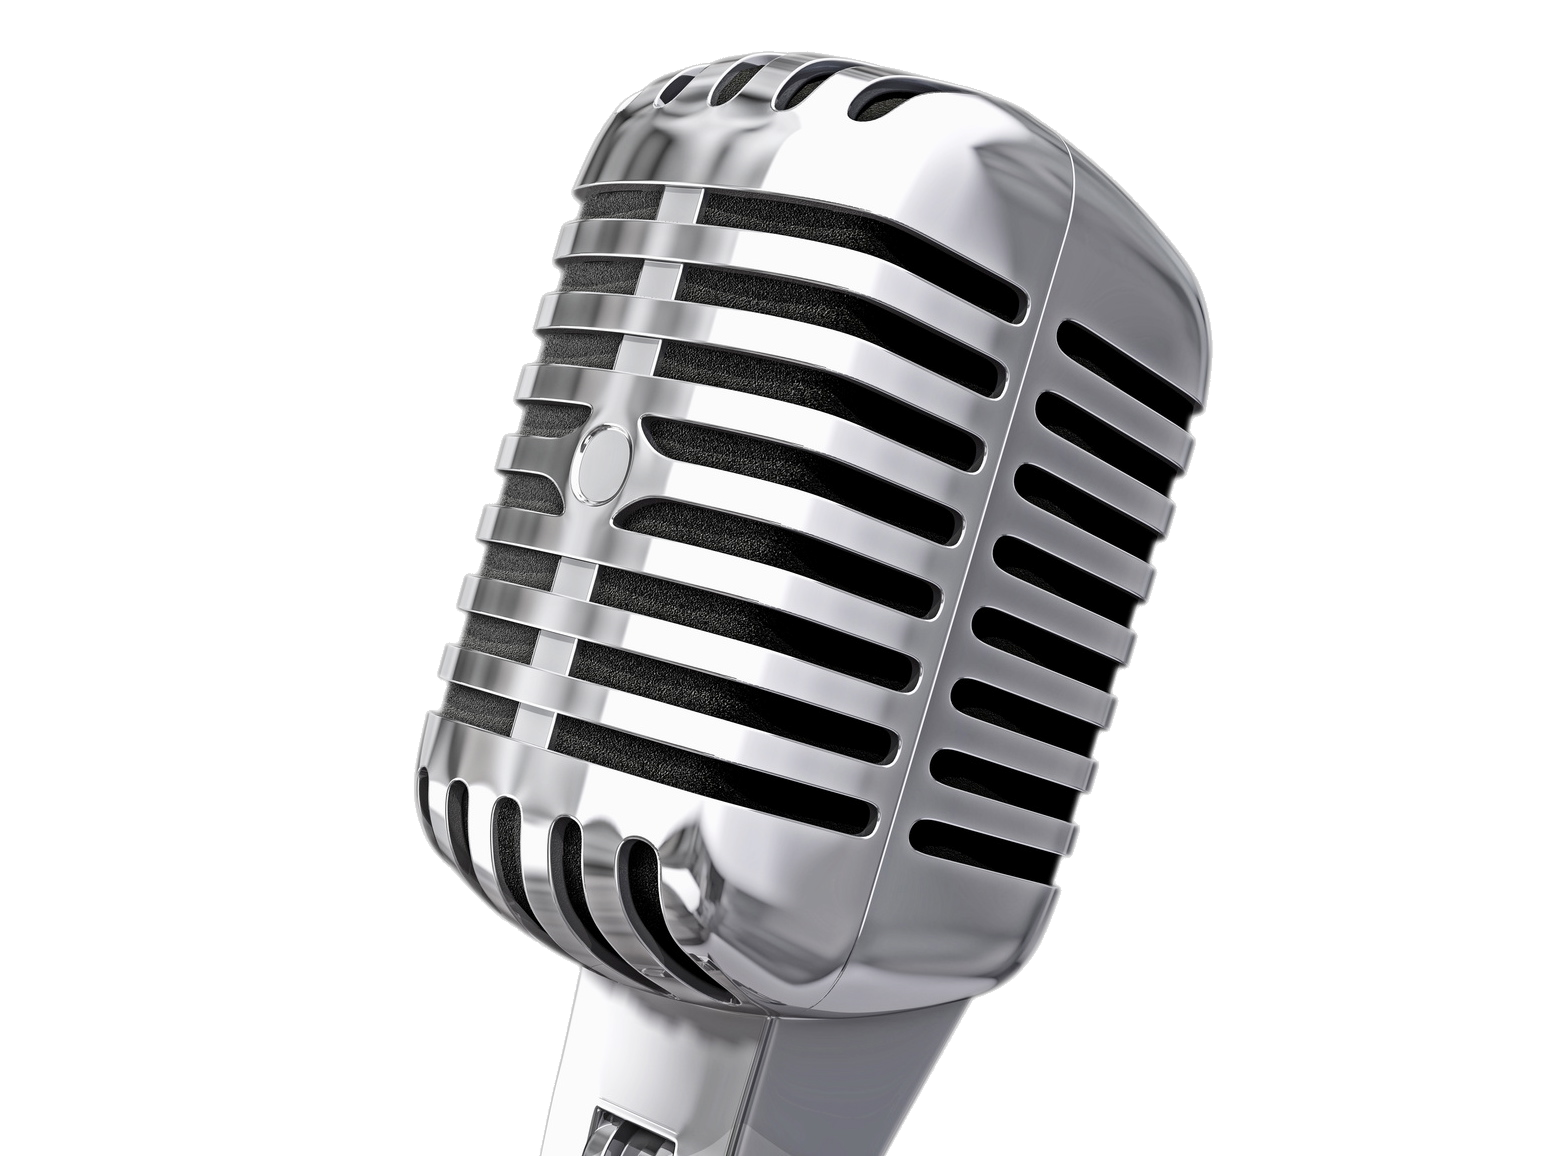 picture library library Png image free download. Microphone clipart hip hop.